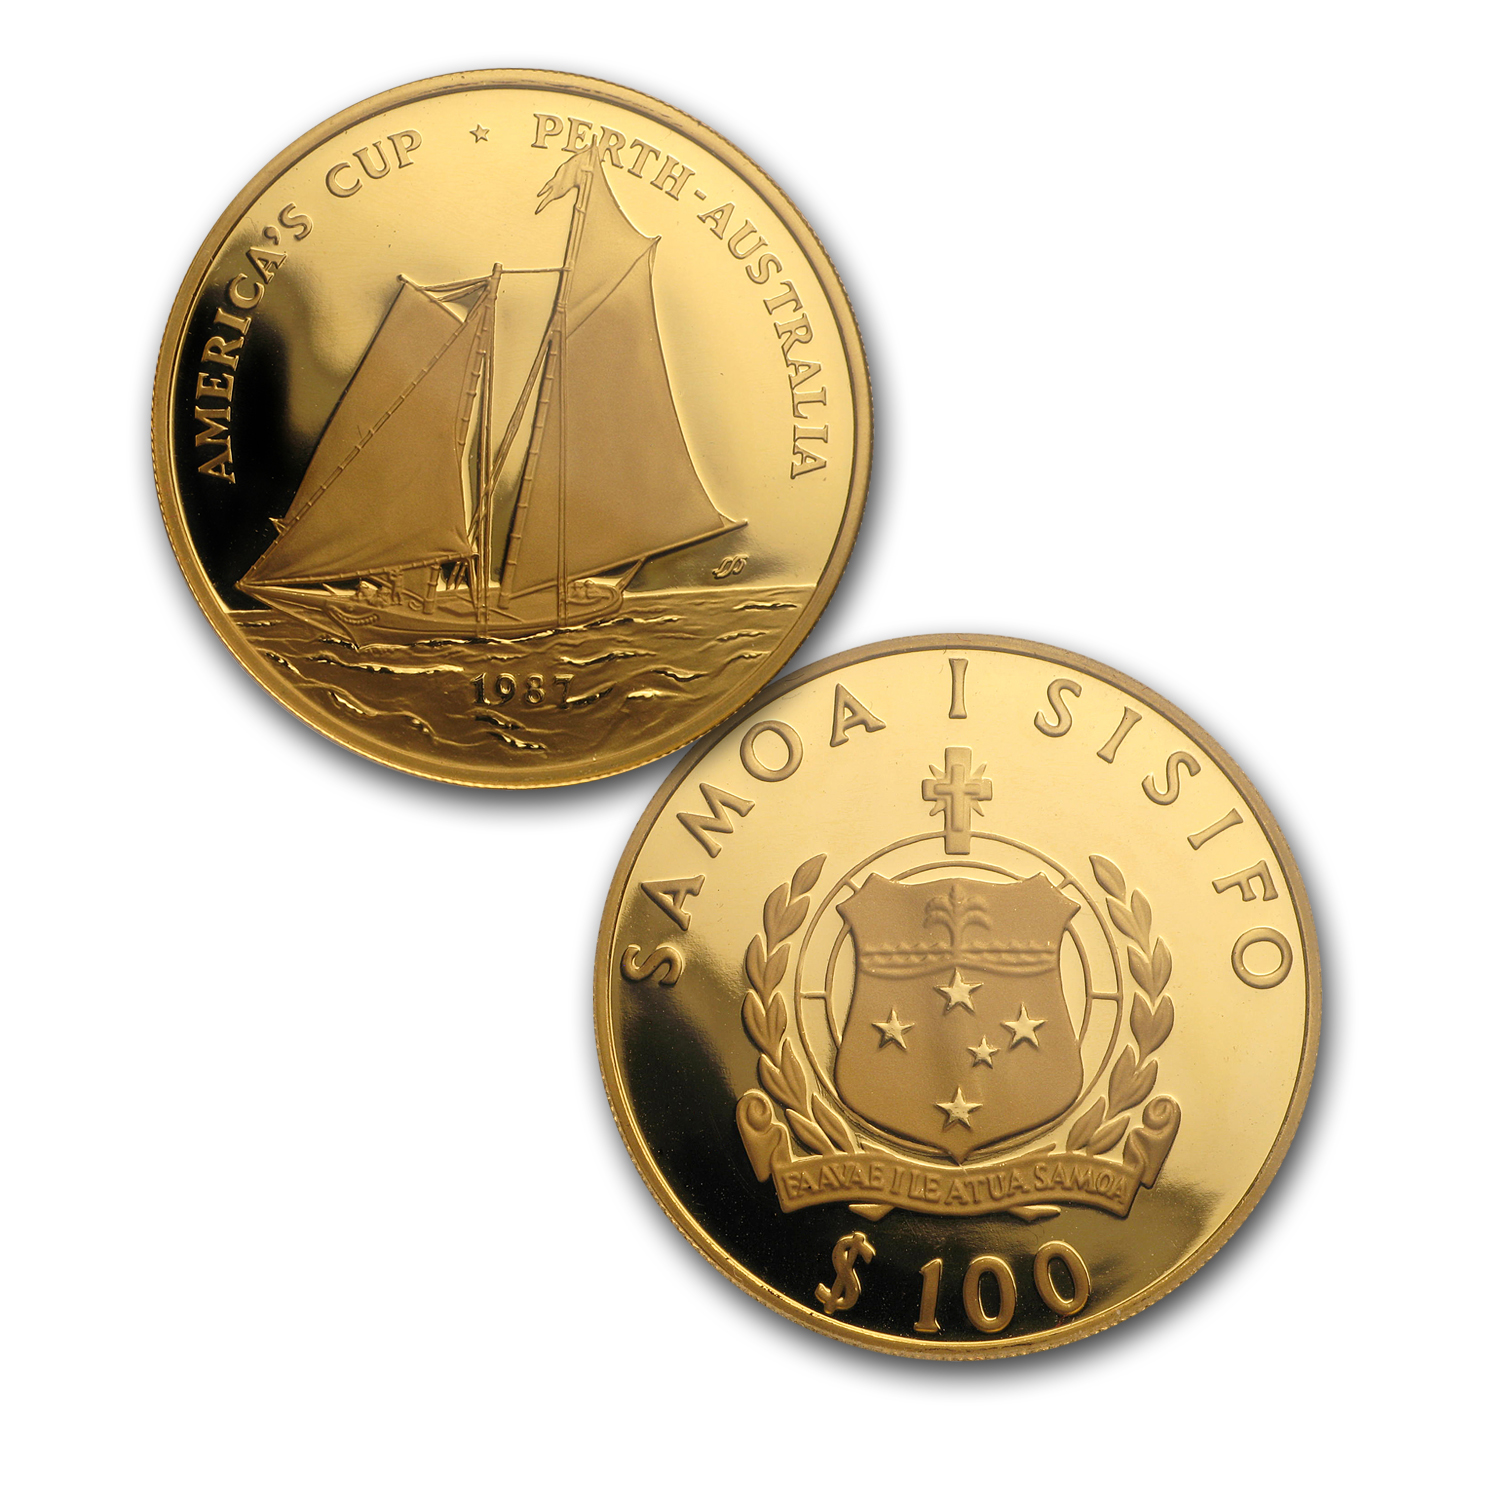 1987 Samoa 3-Coin Gold/Silver America's Cup Proof Set